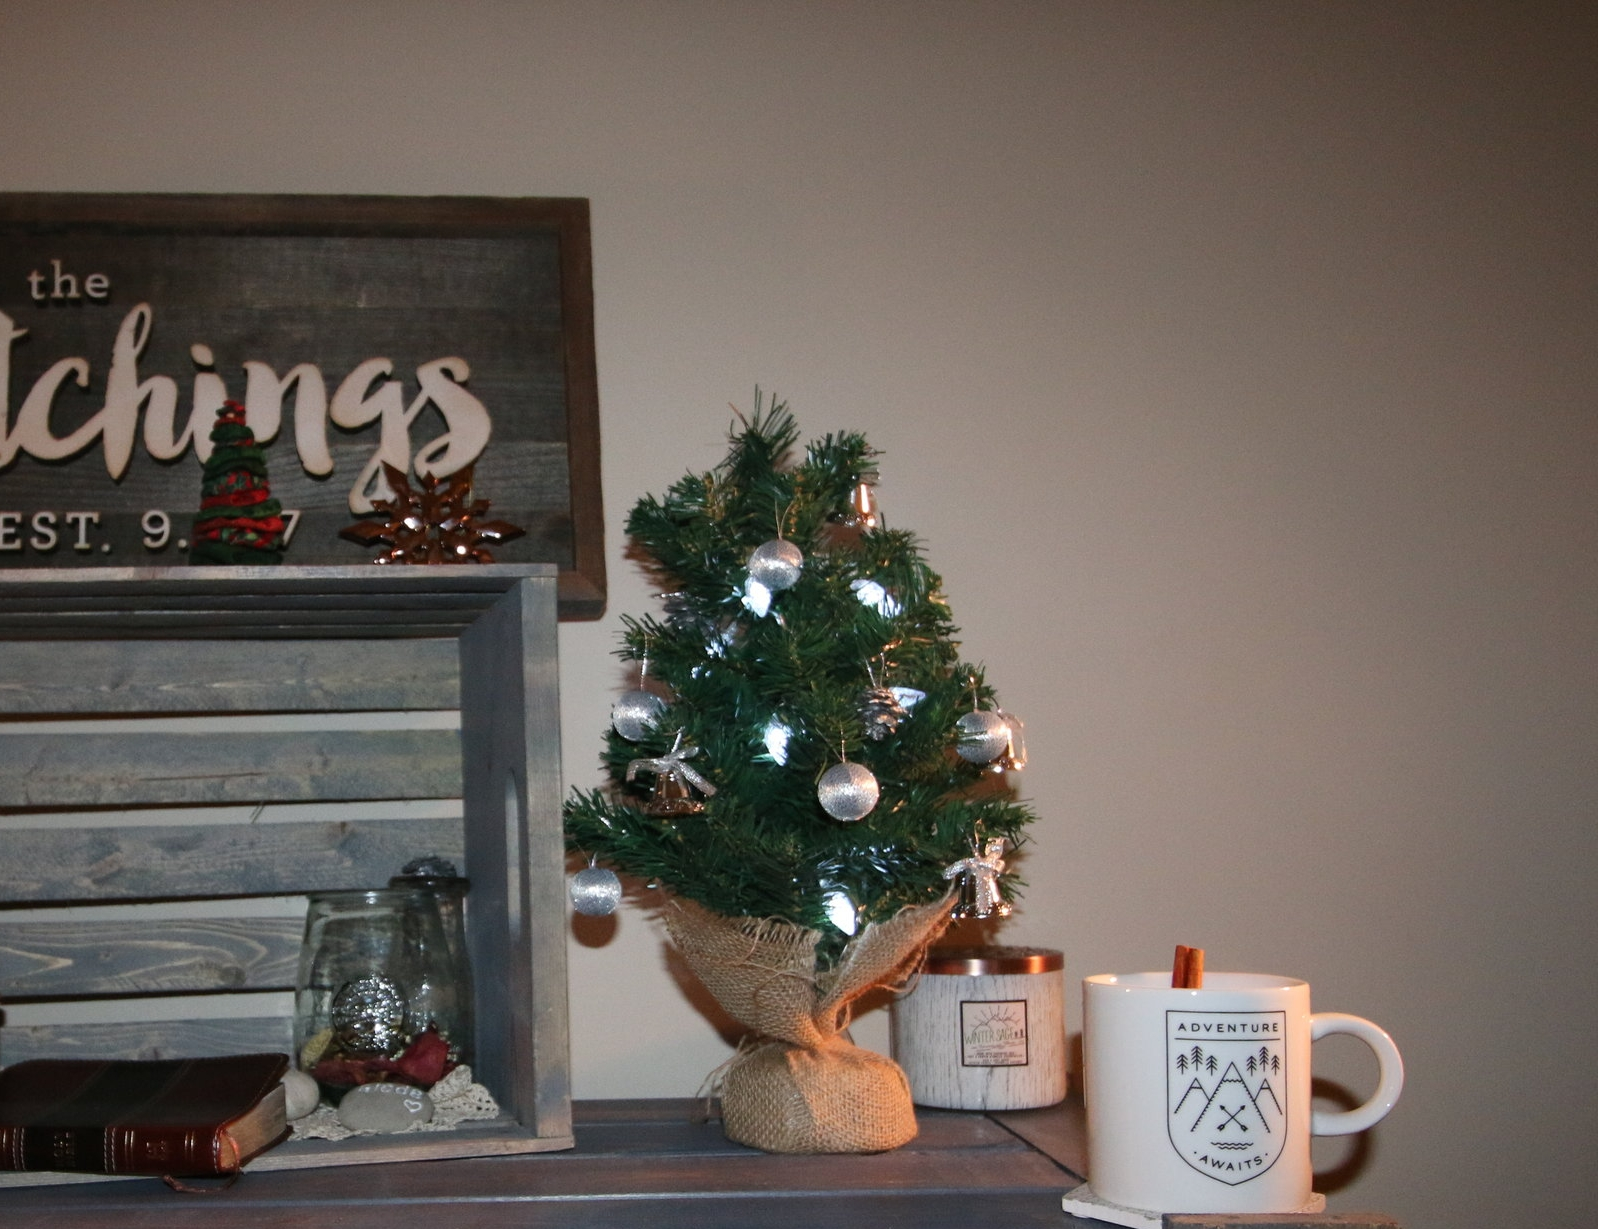 This little tree helps make our place festive (it also looks better in real life ;))